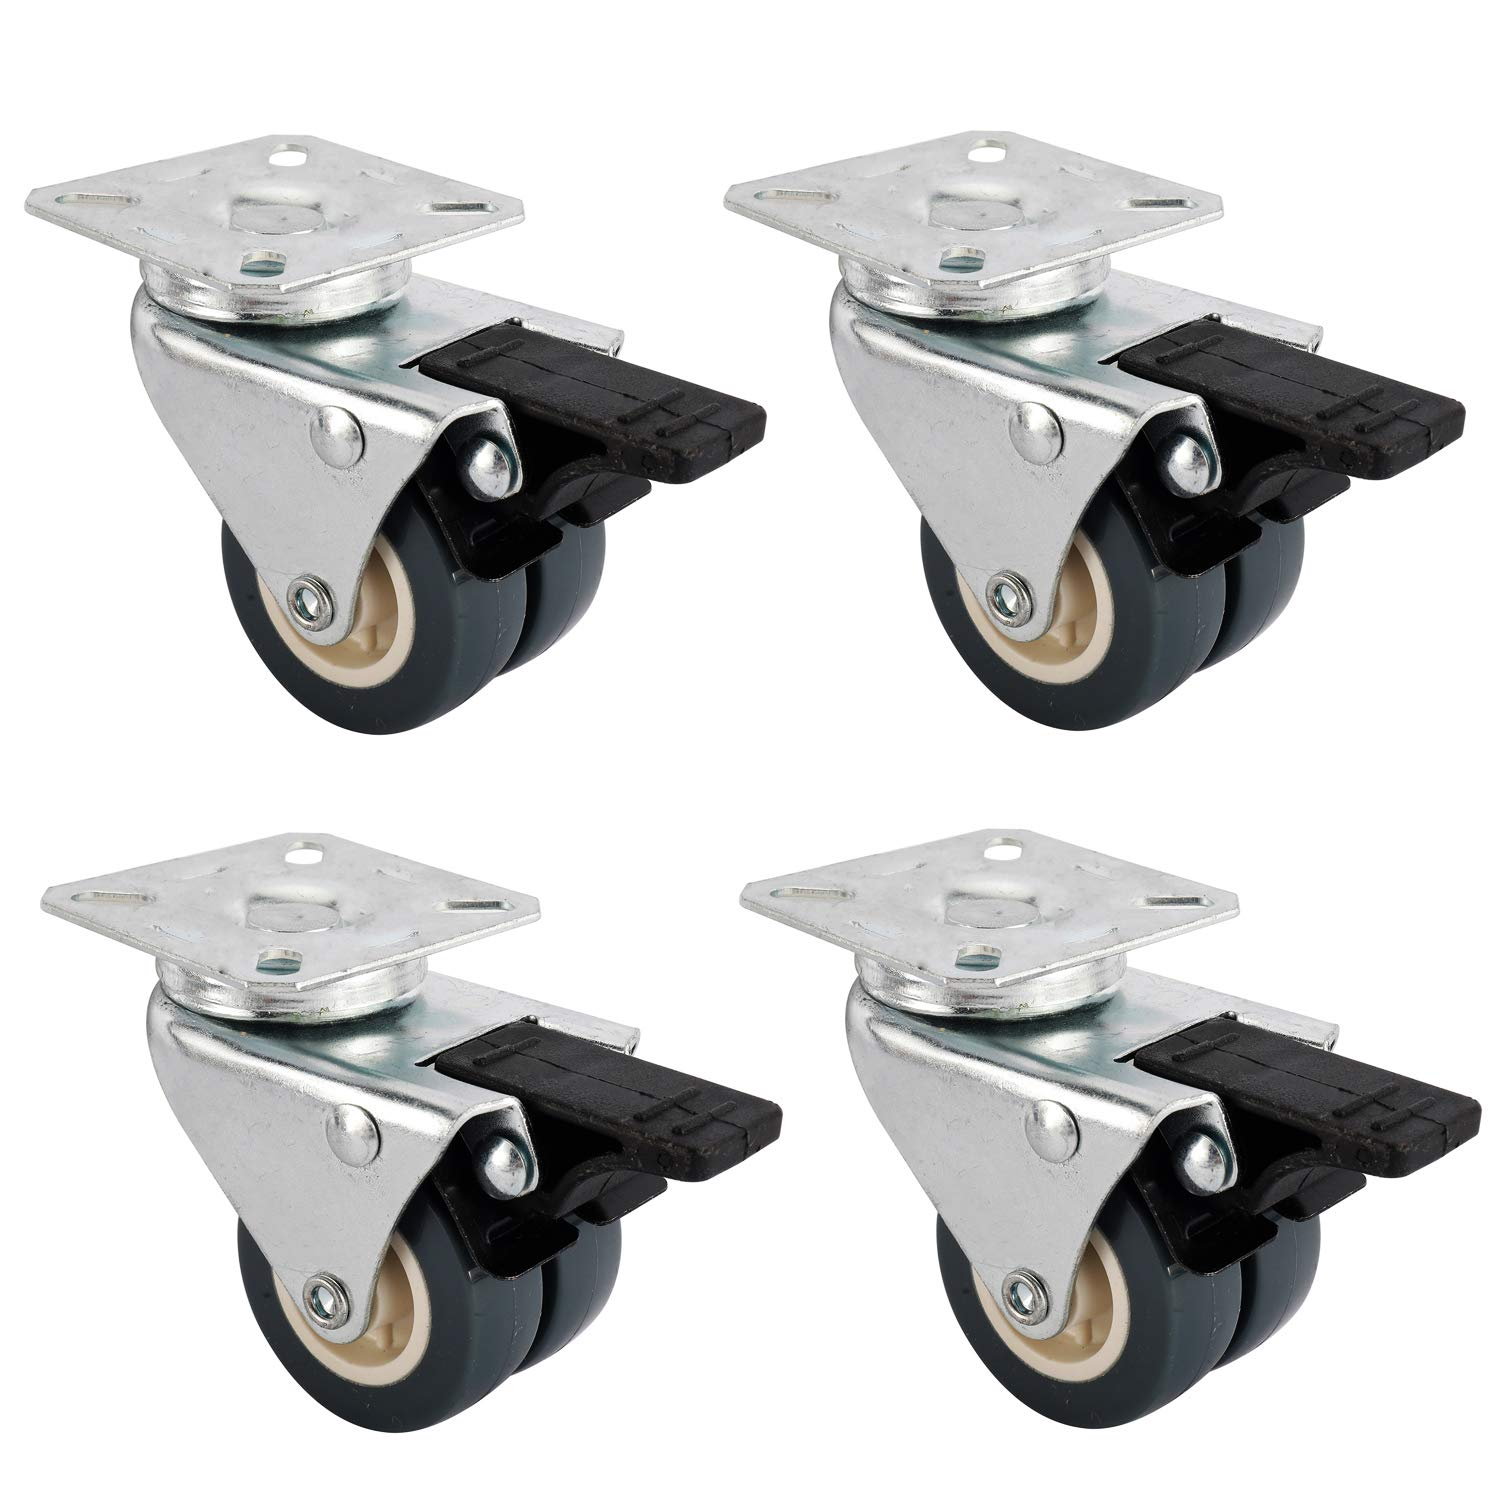 Artilife 4Pack 2Inch Swivel Caster Dual Wheel Heavy Duty Casters with Brake Safety Locking Protect Hardwood Floors, 154Lbs Per Casters Max Load